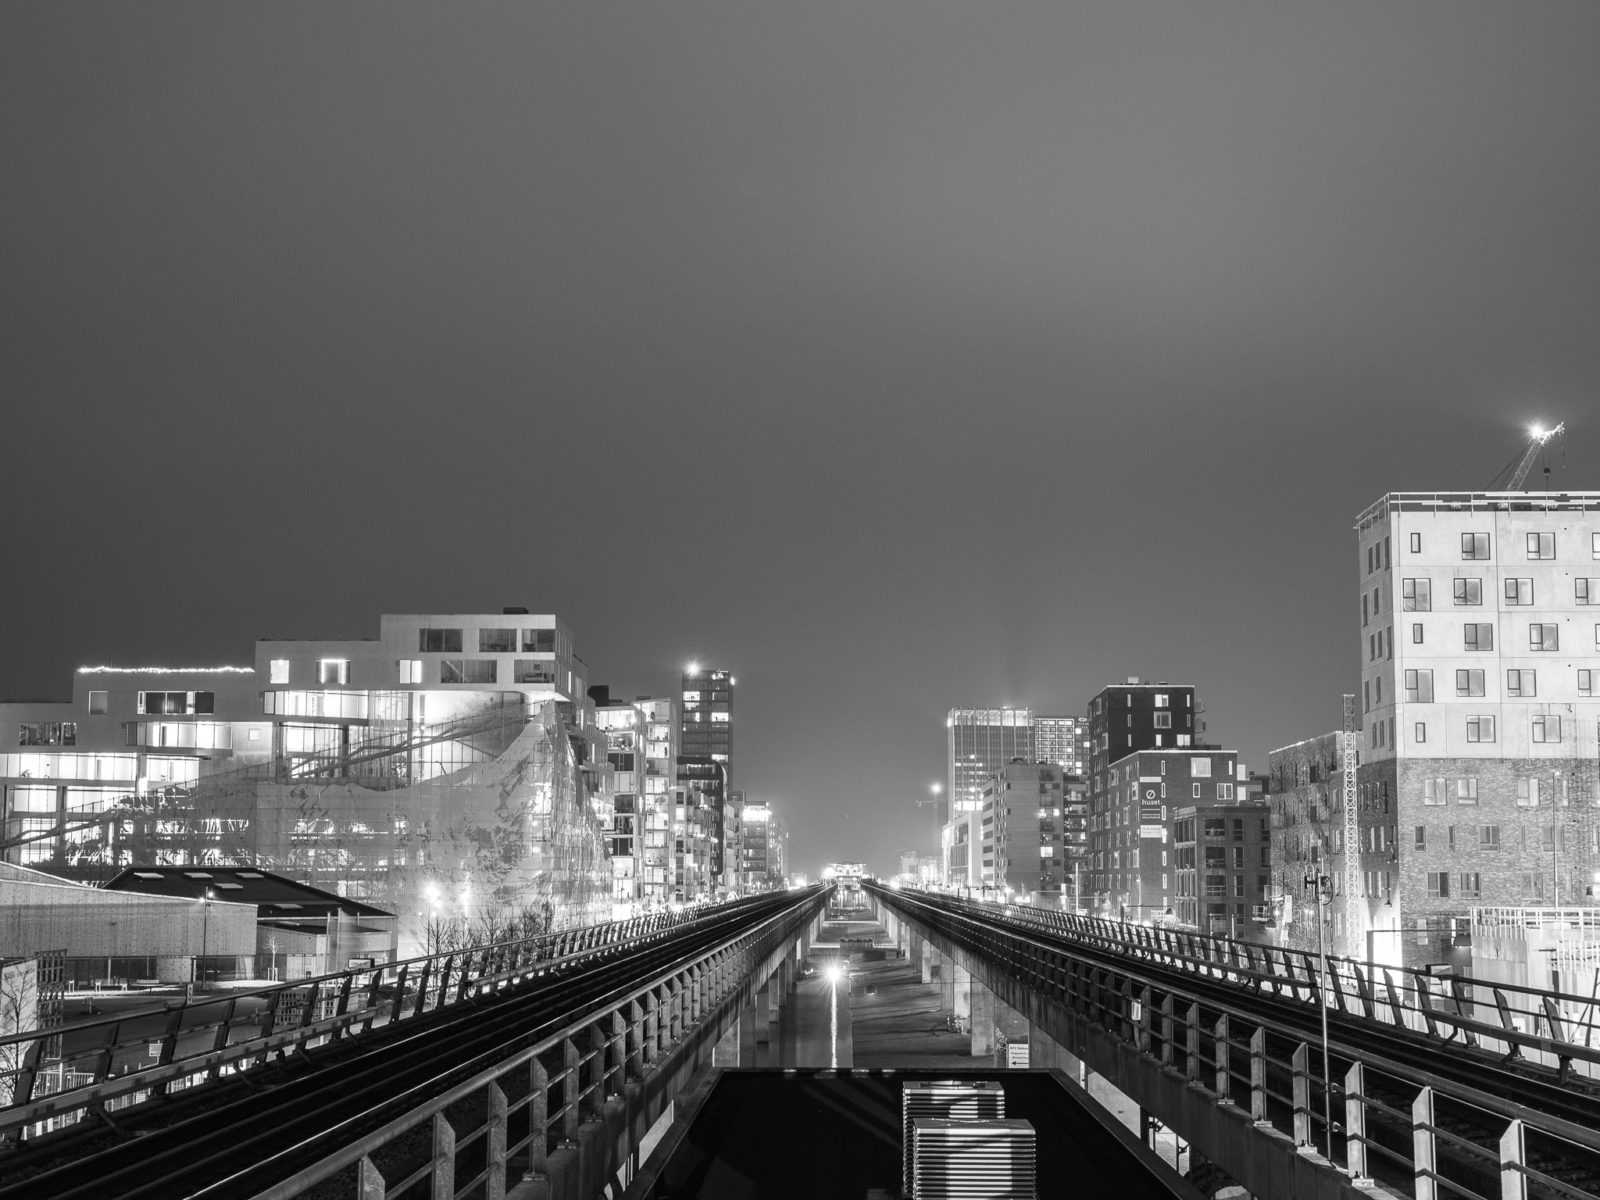 View of Ørestad city and the Metro line